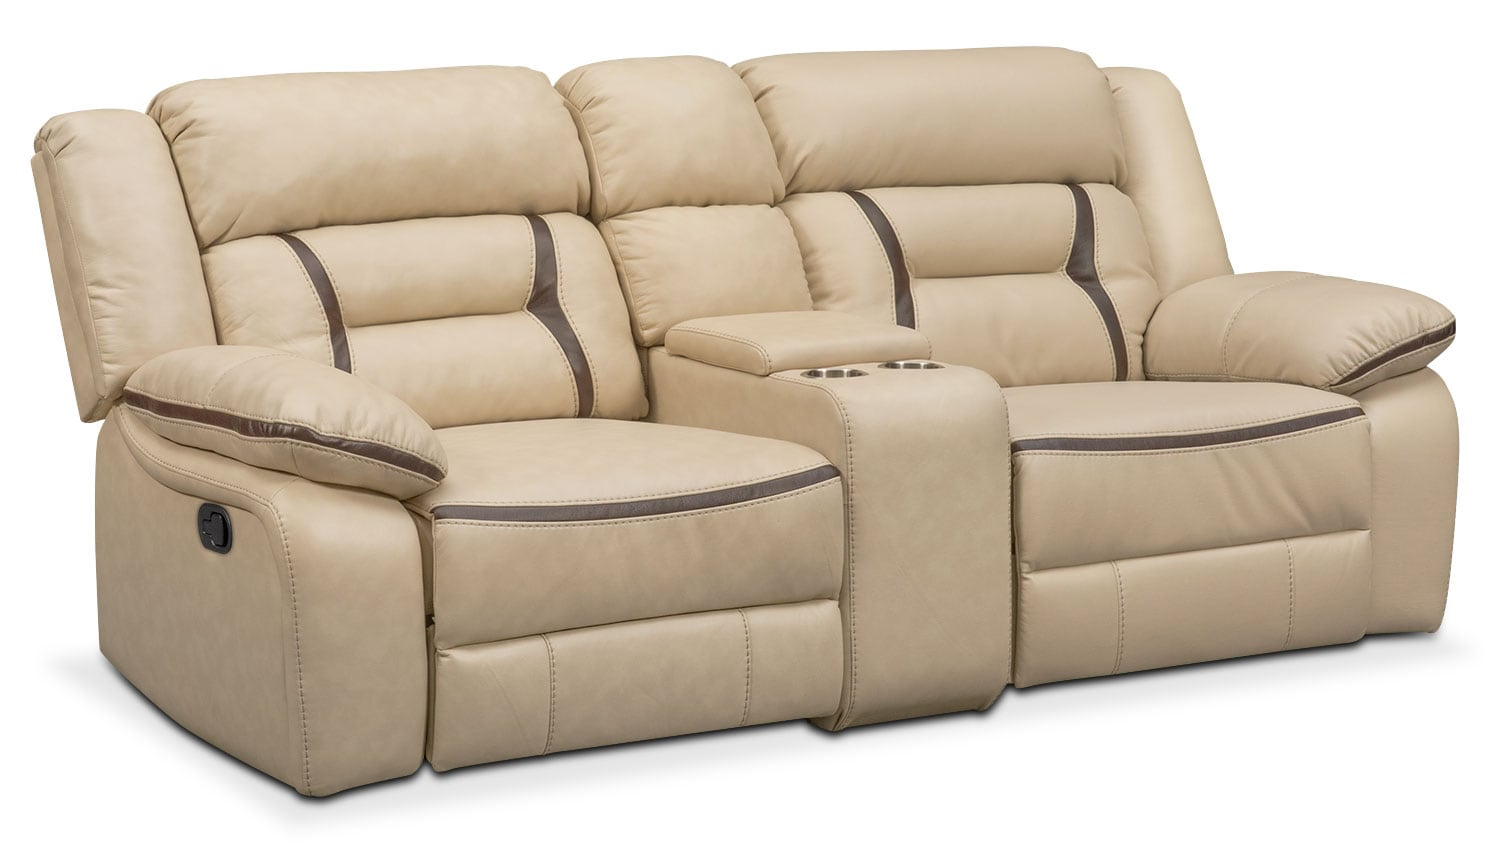 Cream Leather Couch Value City Furniture